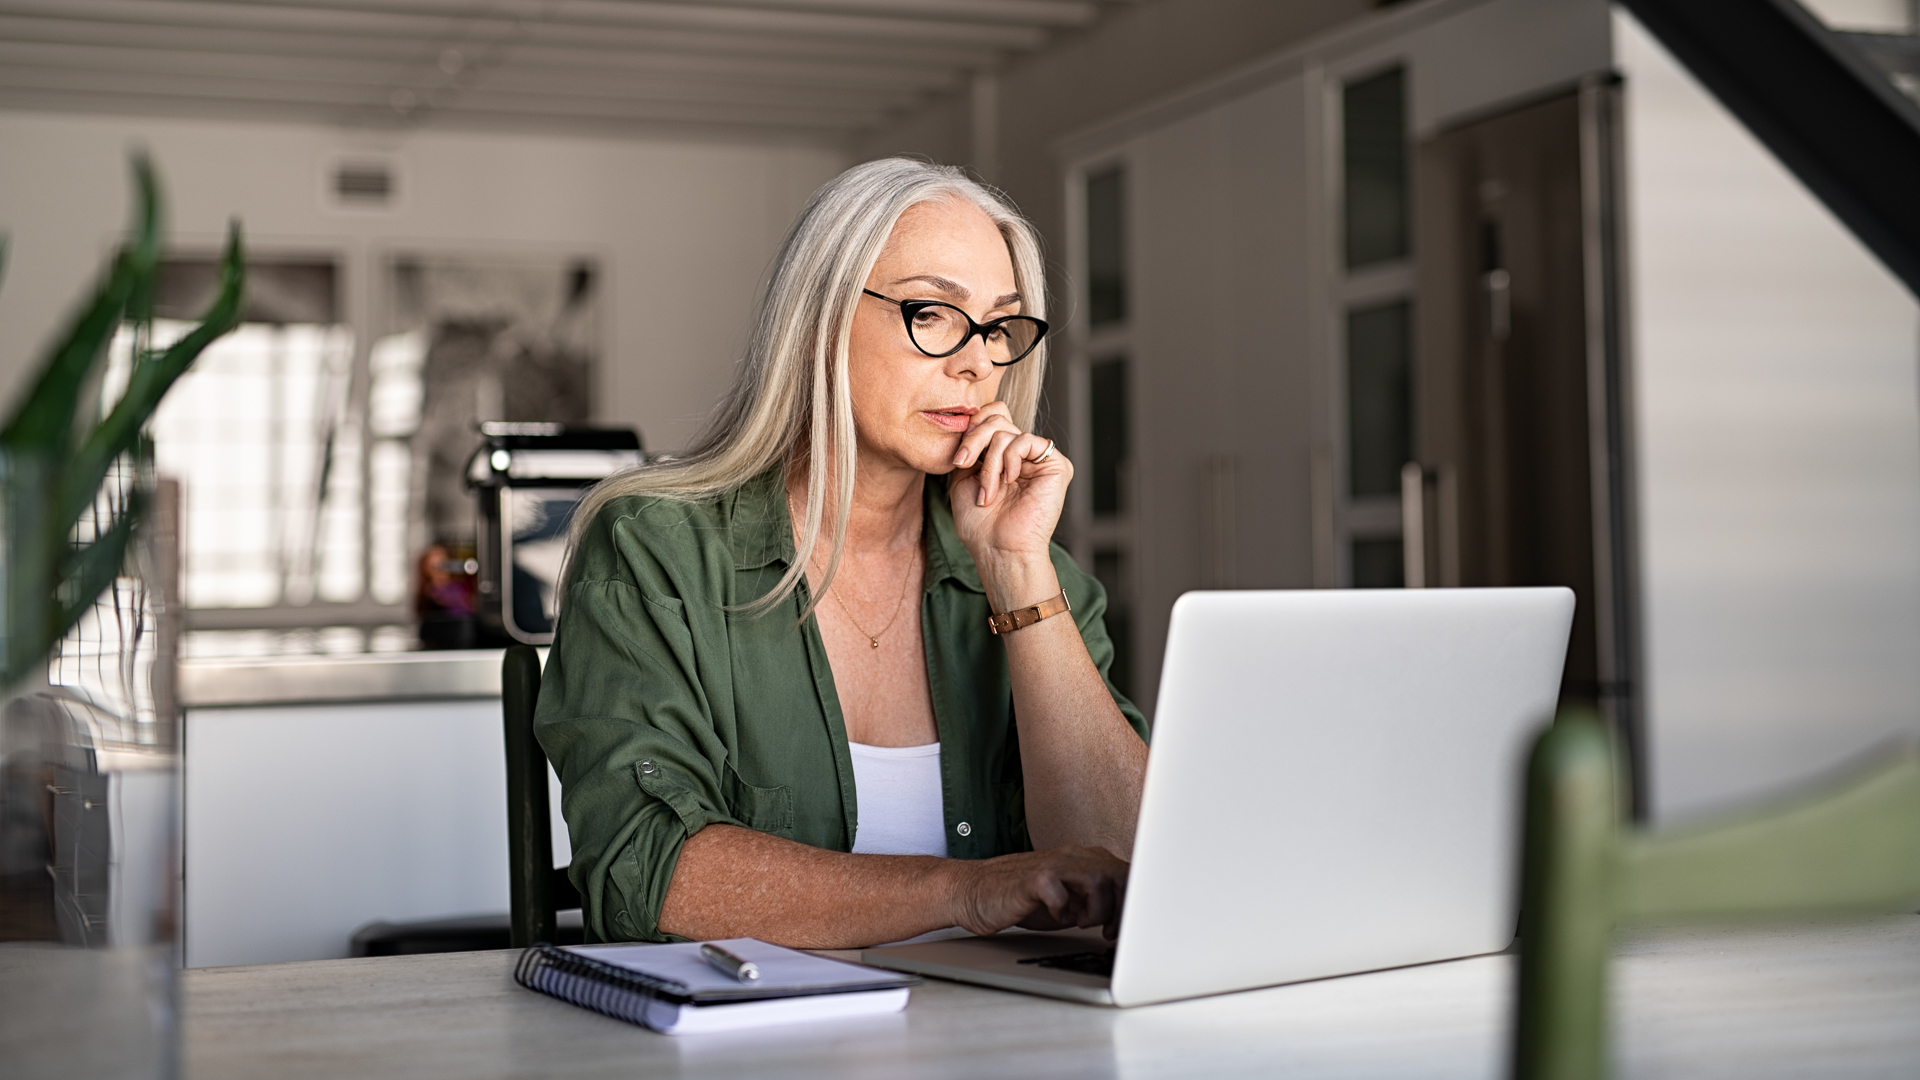 Focused old woman with white hair at home using laptop.